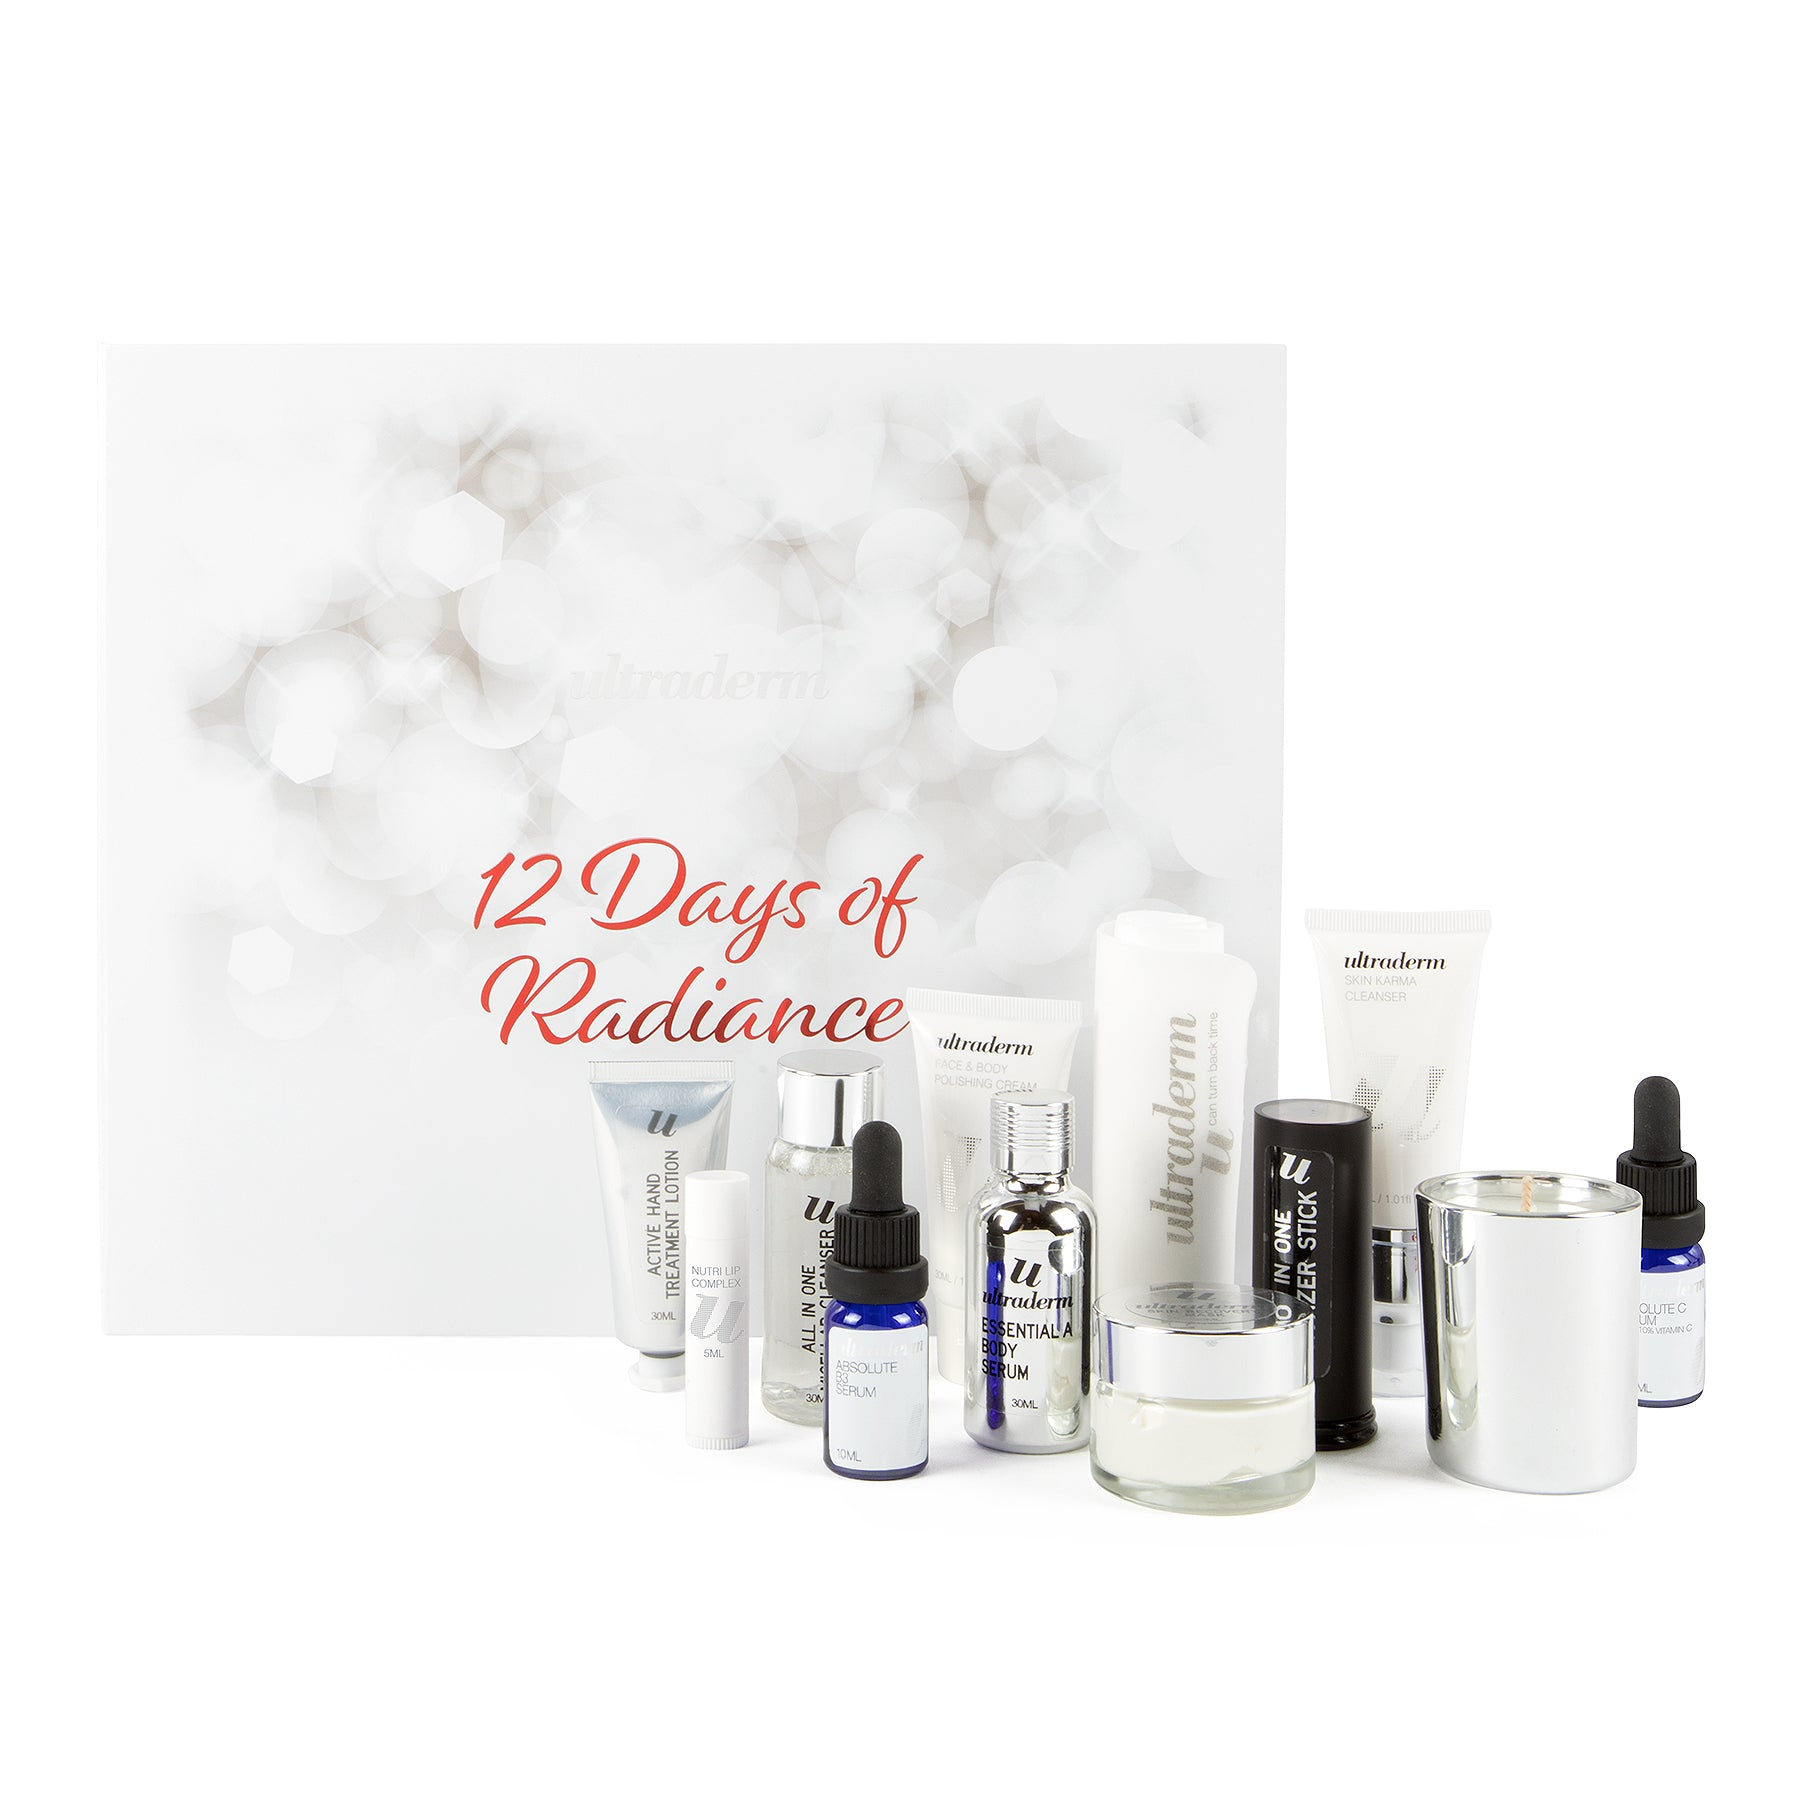 Ultraderm 12 Days of Radiance. The ultimate Australian skincare advent calendar 2019